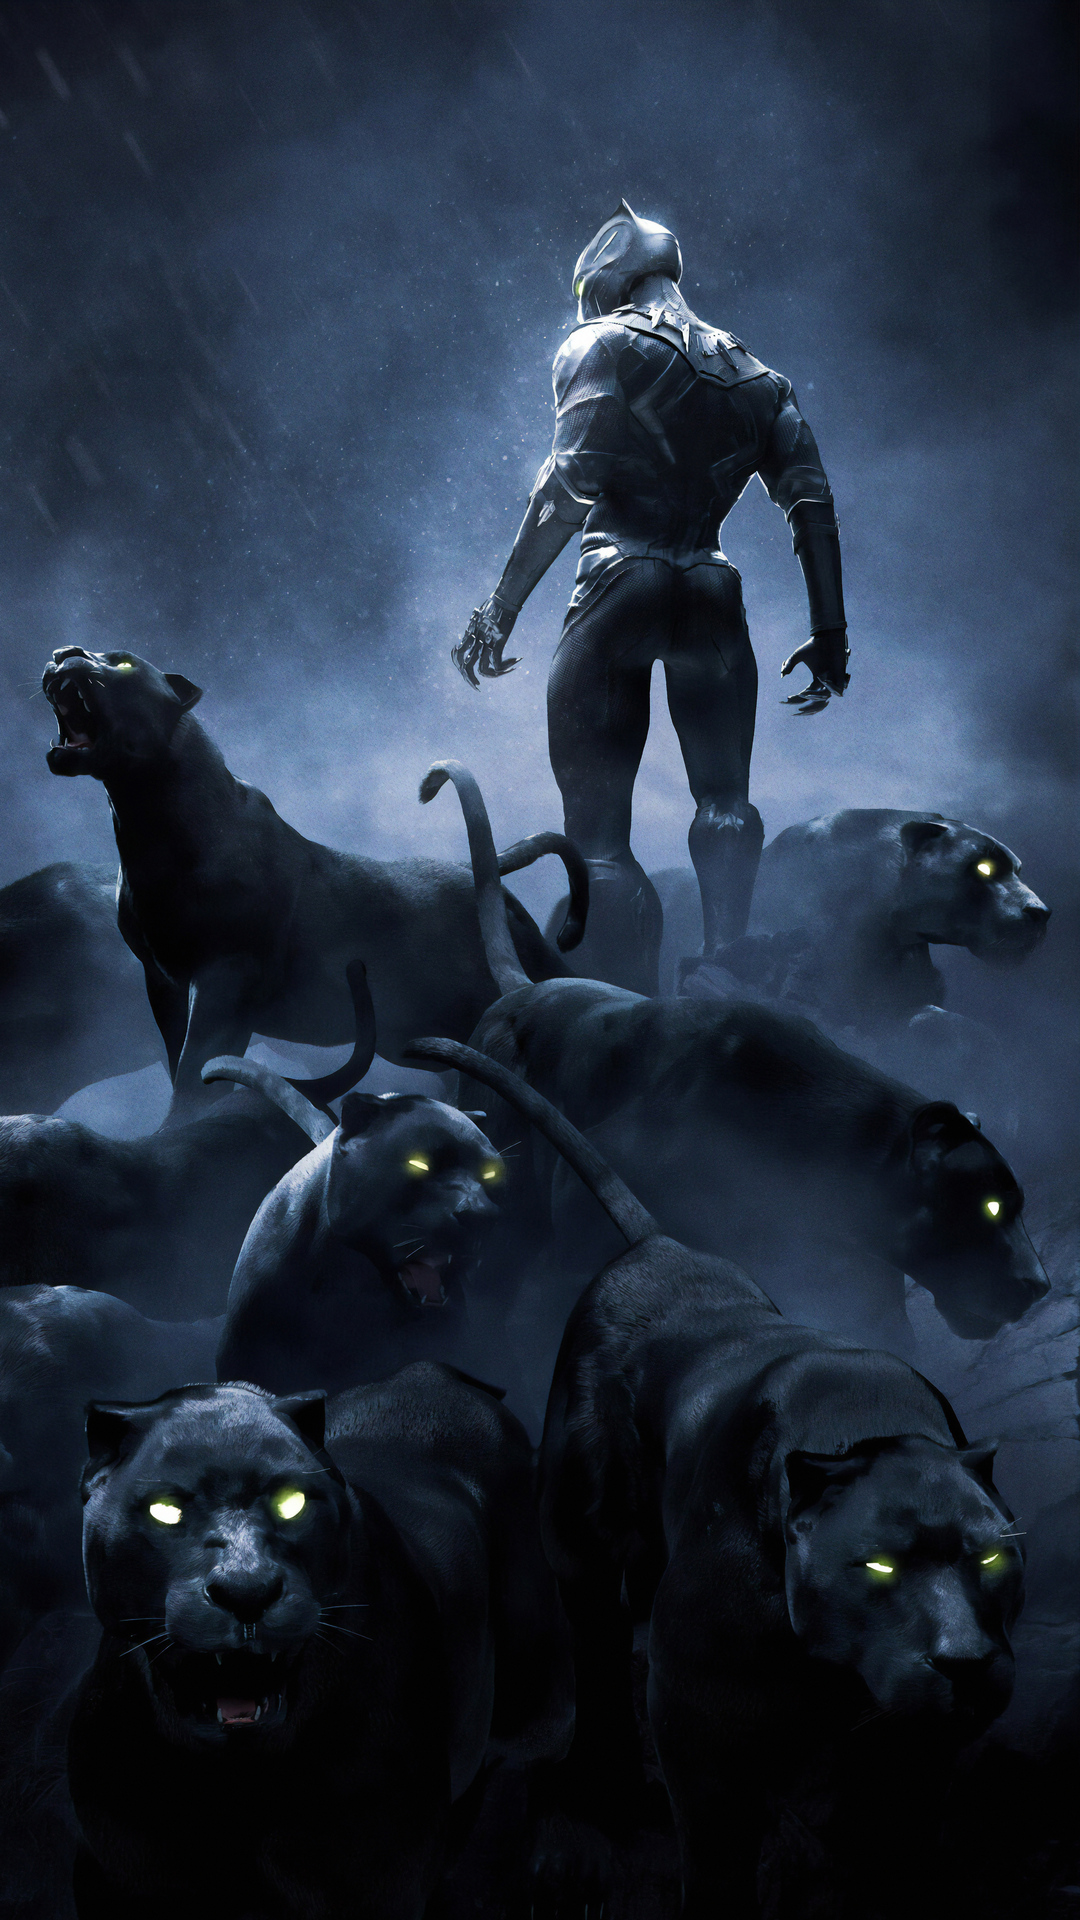 1080x1920 Black Panther Rise Up 4k Iphone 7 6s 6 Plus Pixel Xl One Plus 3 3t 5 Hd 4k Wallpapers Images Backgrounds Photos And Pictures